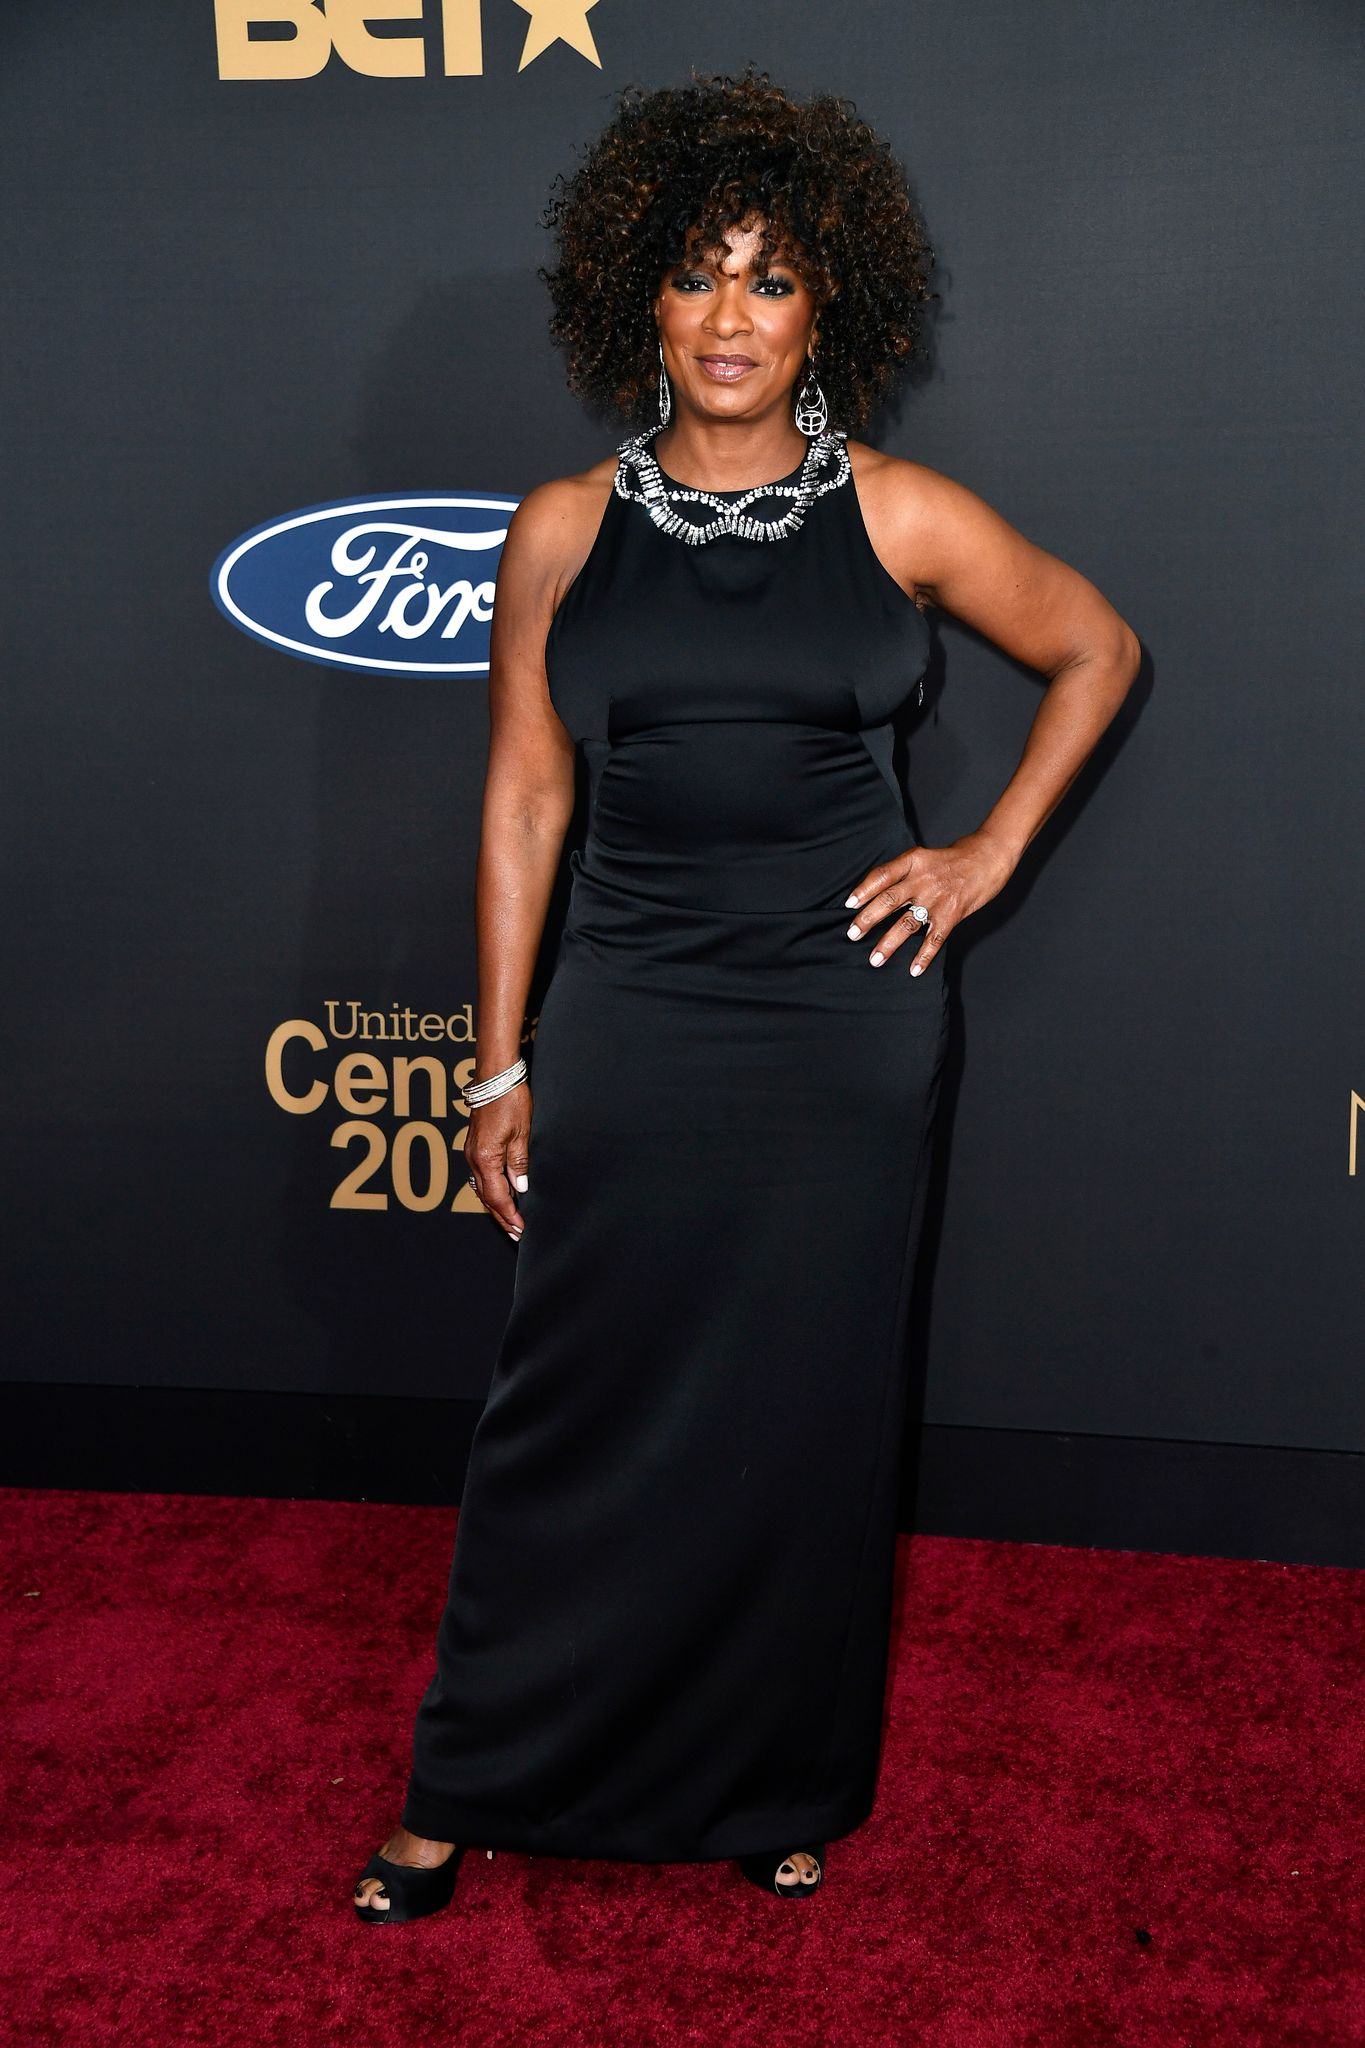 Vanessa Bell Calloway at the 51st NAACP Image Awards, Presented by BET, at Pasadena Civic Auditorium on February 22, 2020 in Pasadena, California | Photo: Getty Images